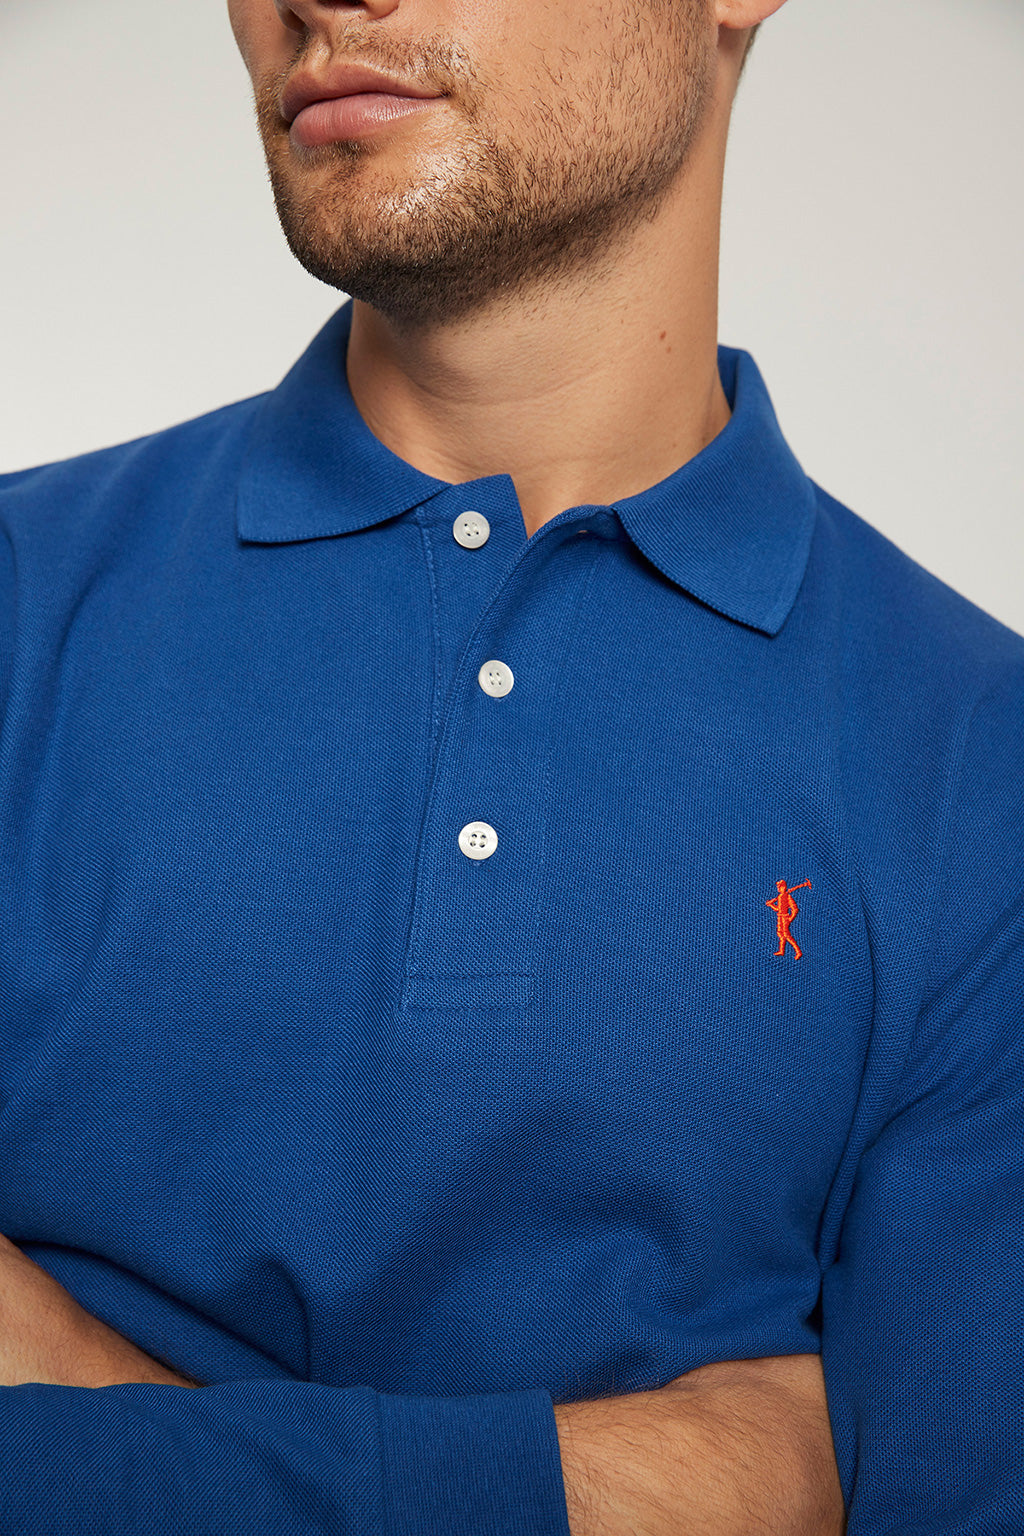 Polo manga larga azul royal con logo bordado a contraste